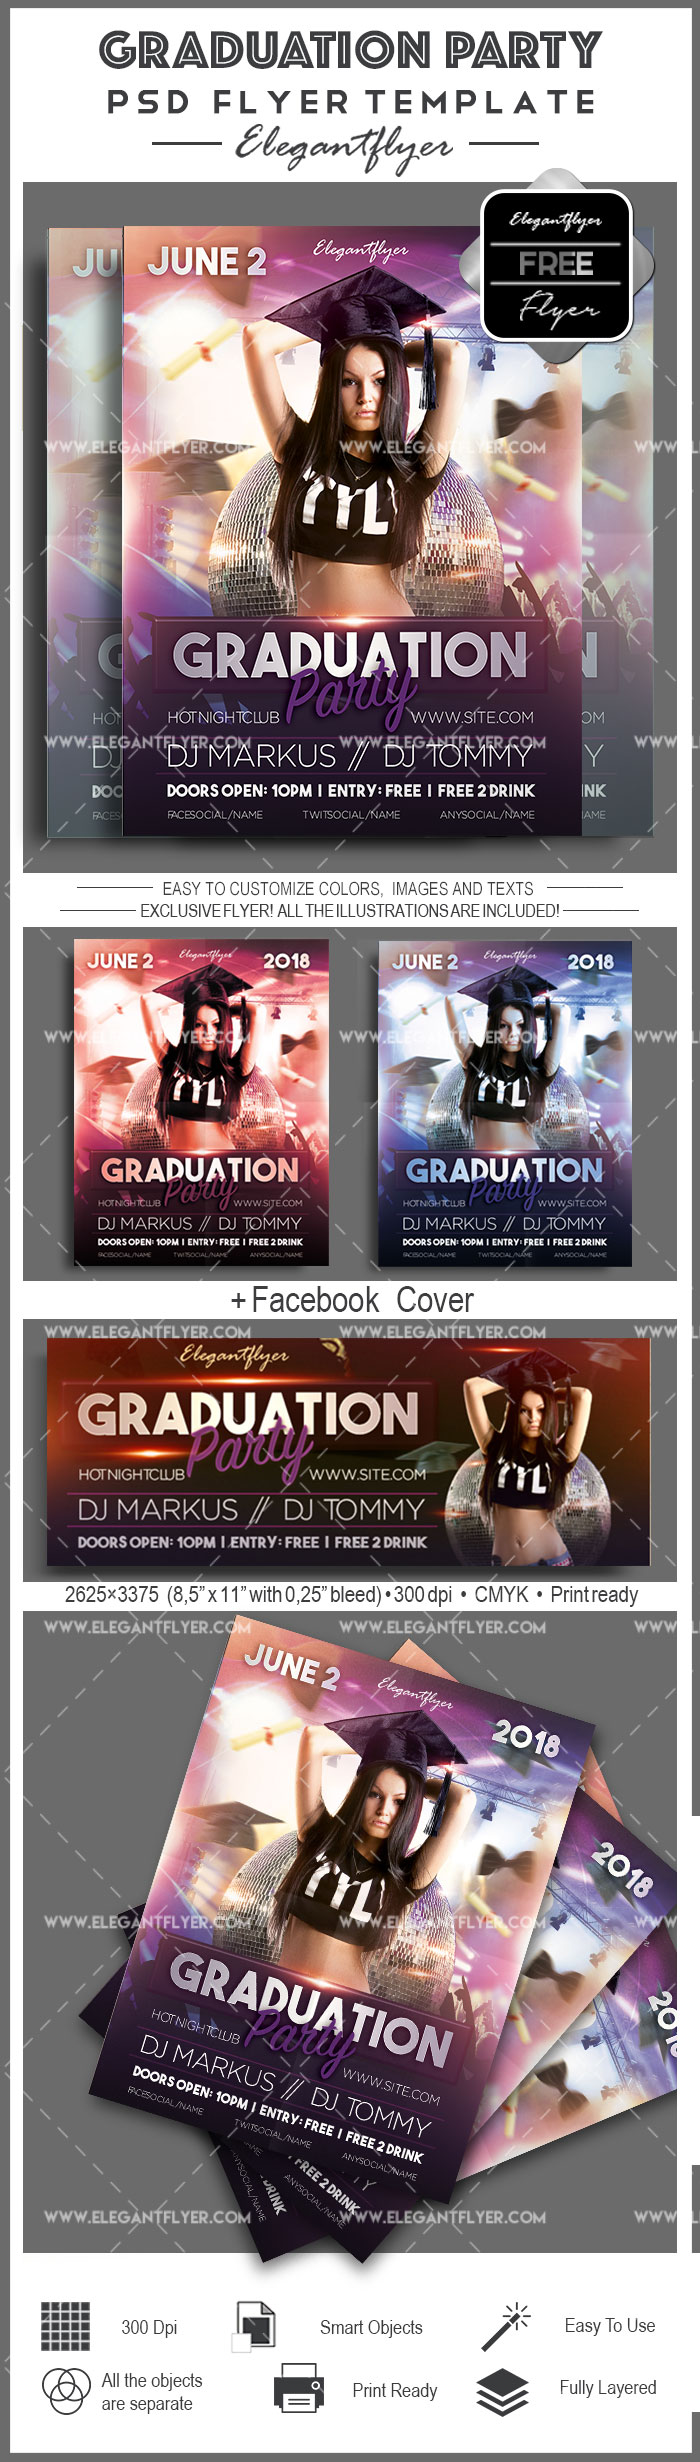 graduation party  u2013 free flyer psd template  u2013 by elegantflyer